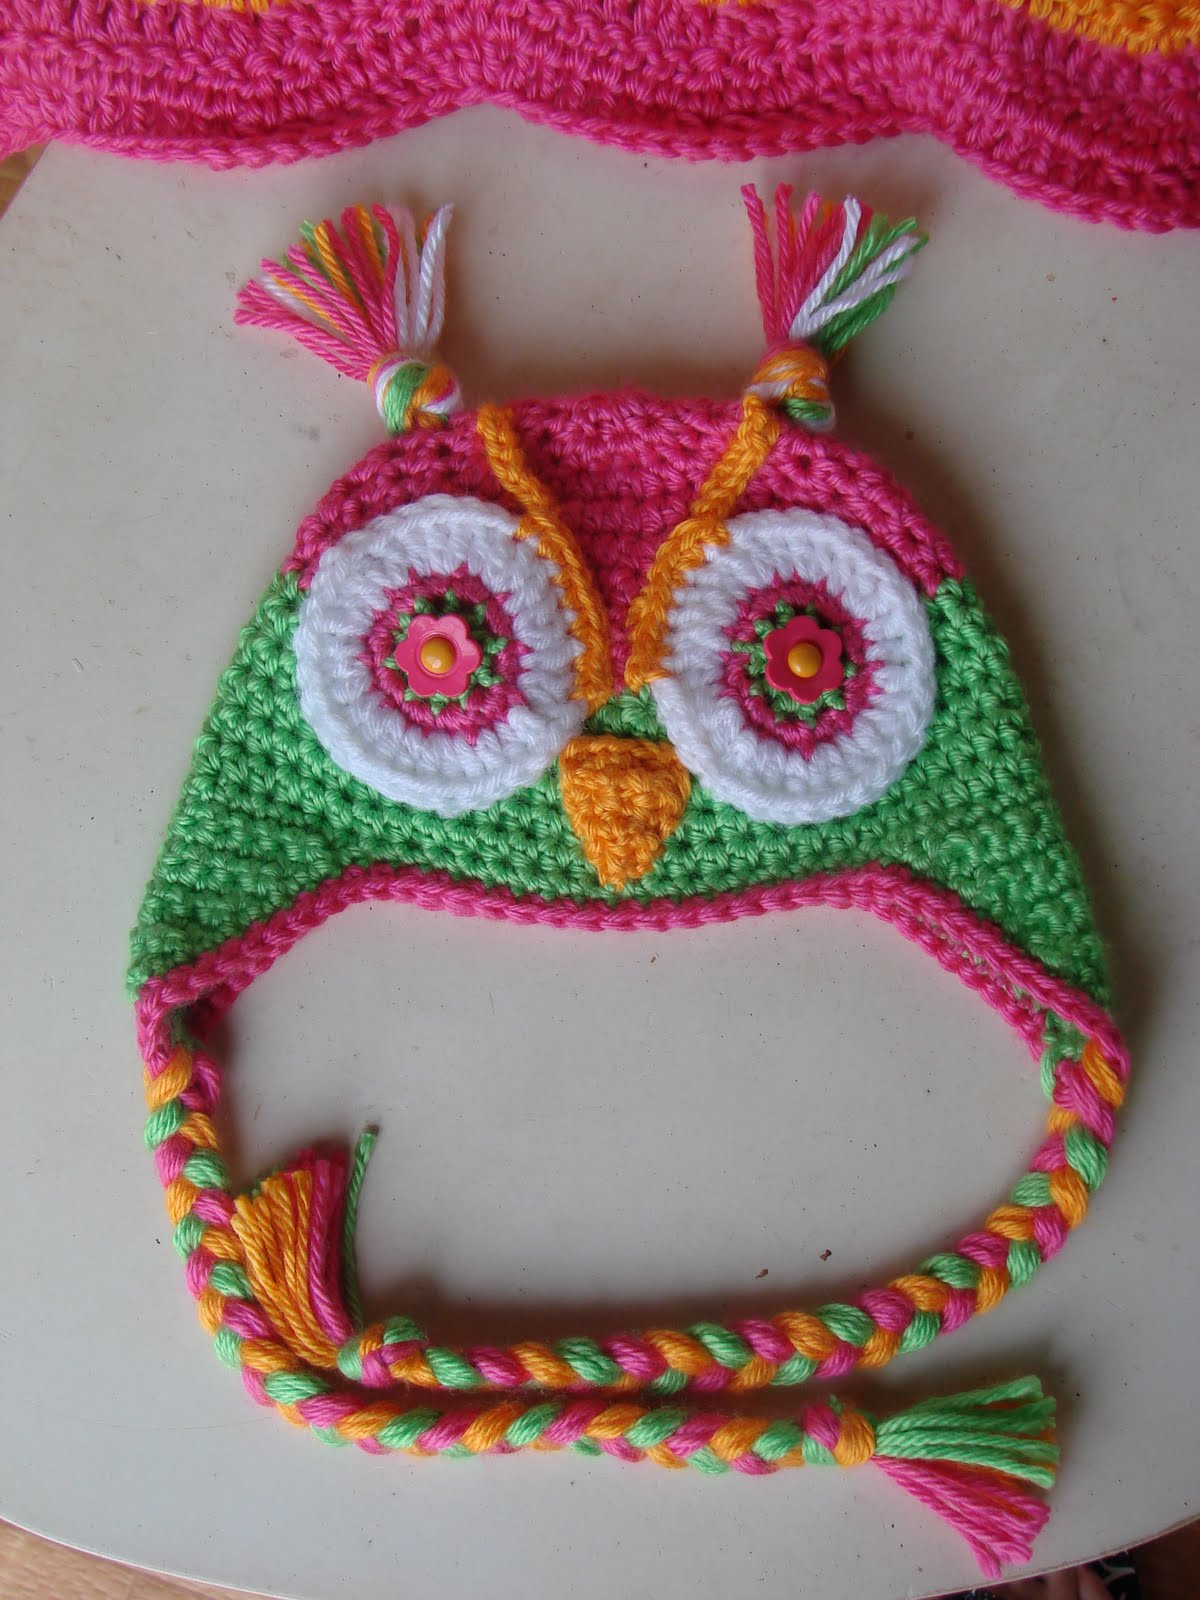 Crochet in Color: Tip: Head and Hat Measurements